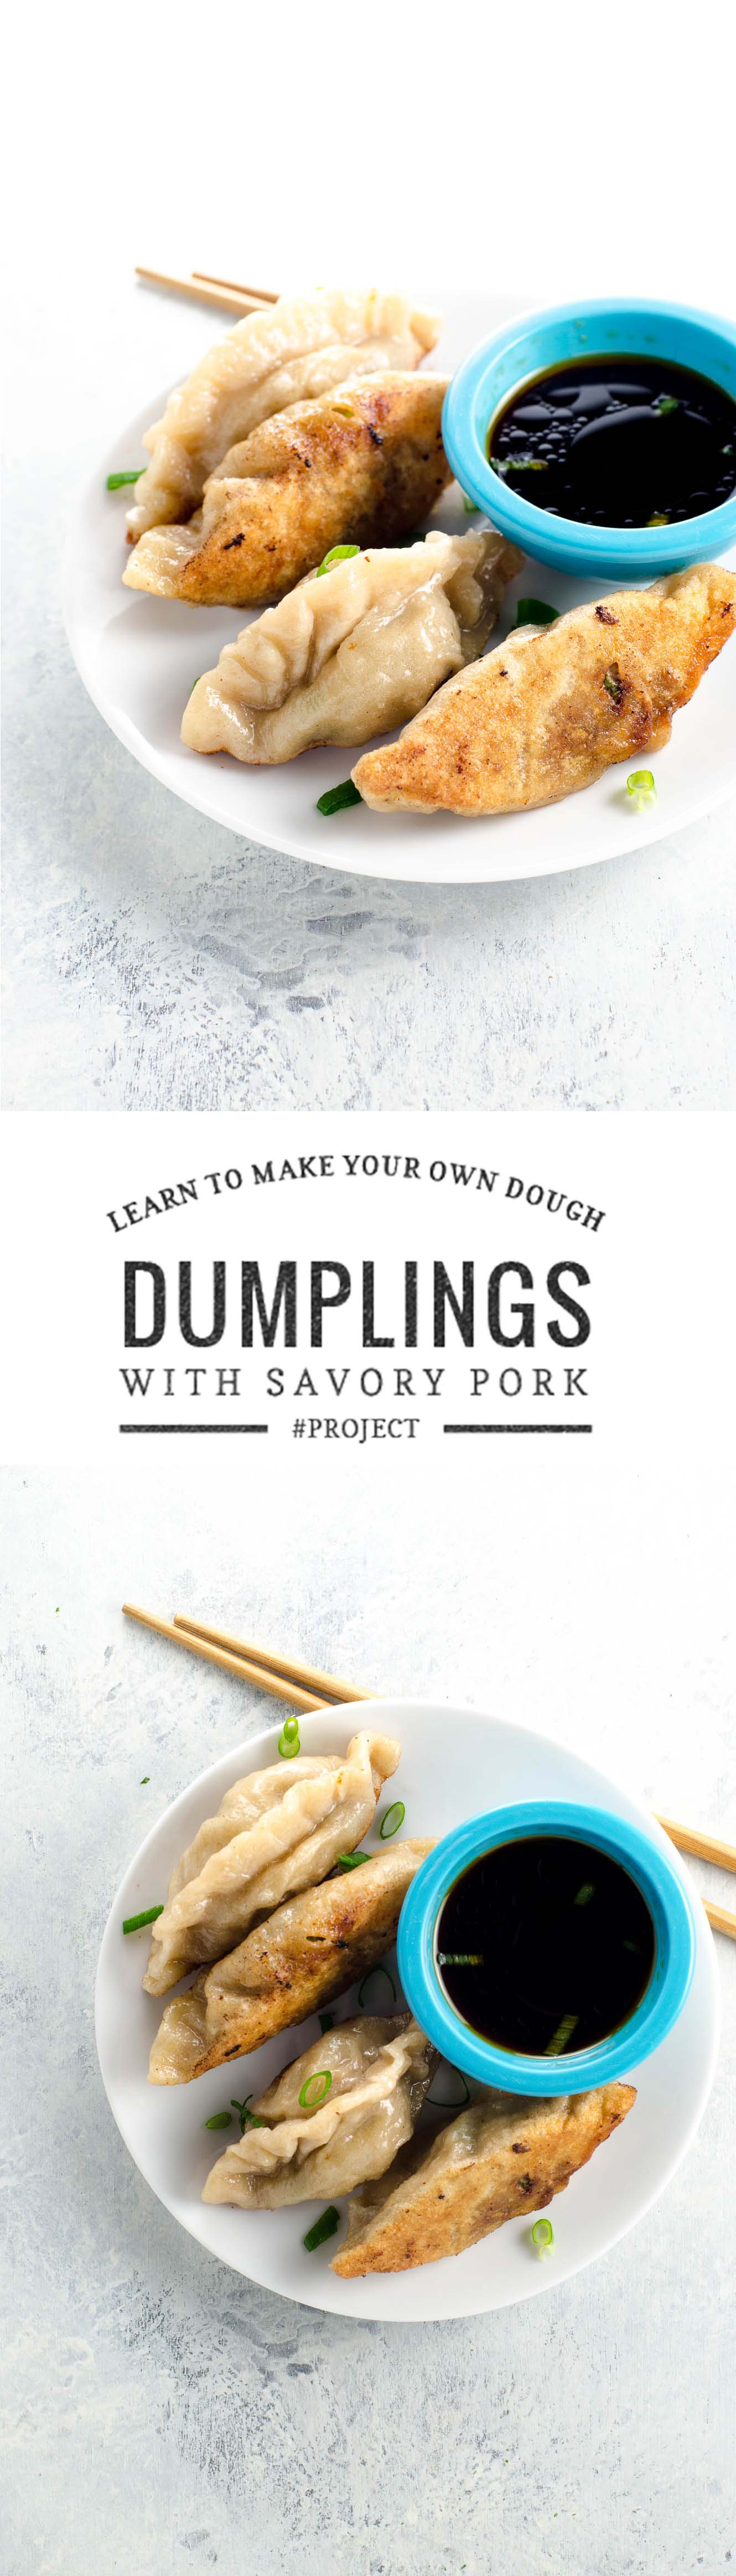 Chinese dumplings with a savory pork filling are a fun and satisfying kitchen project. Quick video tutorial to demystify the process -- you can totally do this! :)